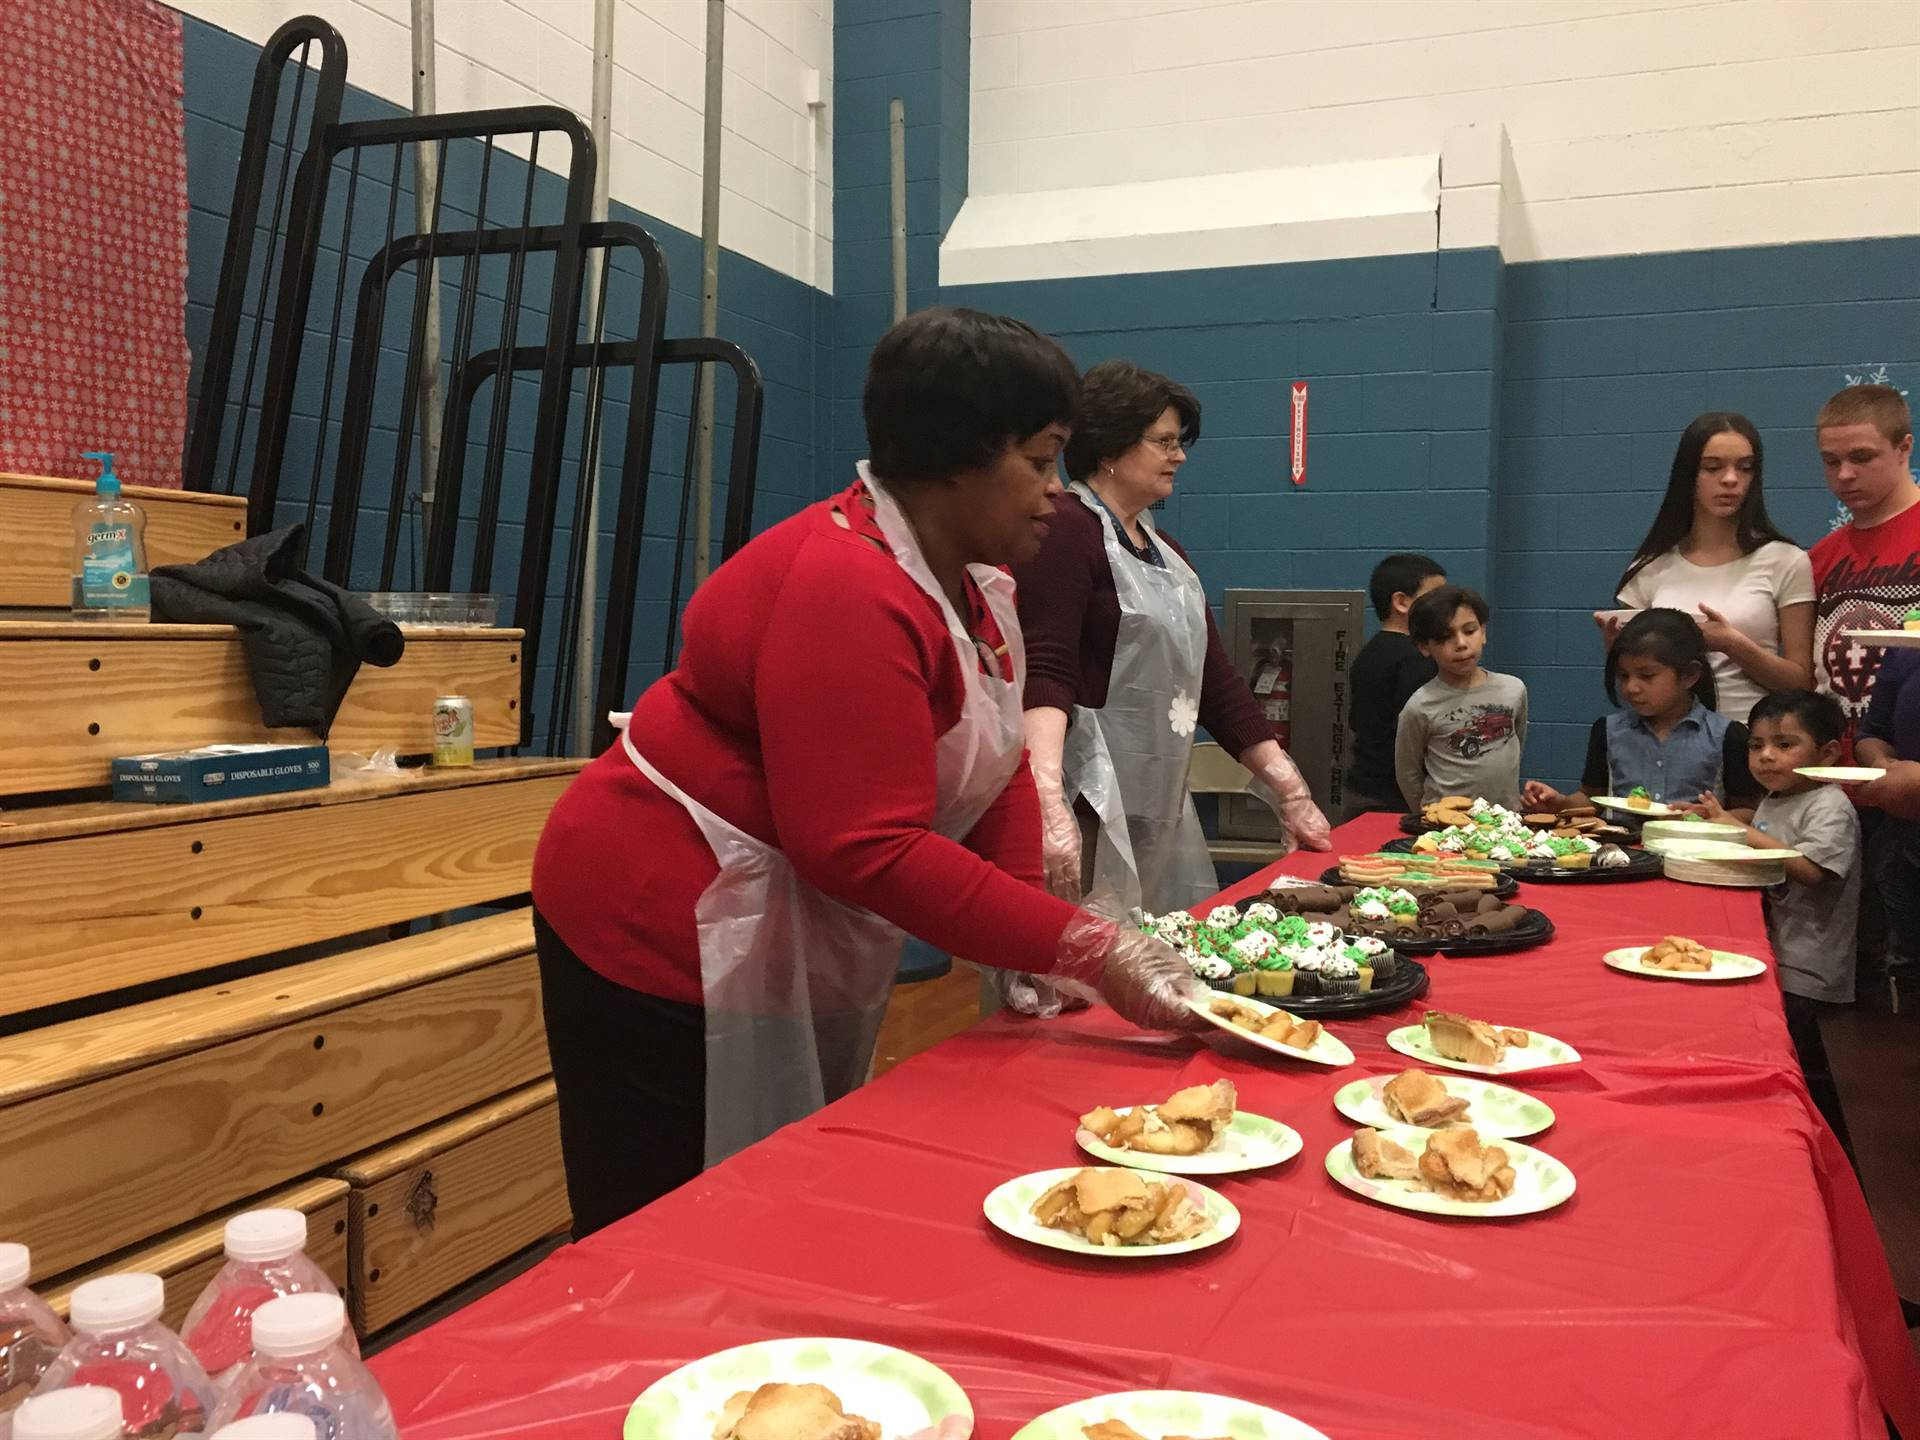 Helping out at the Holiday dinner